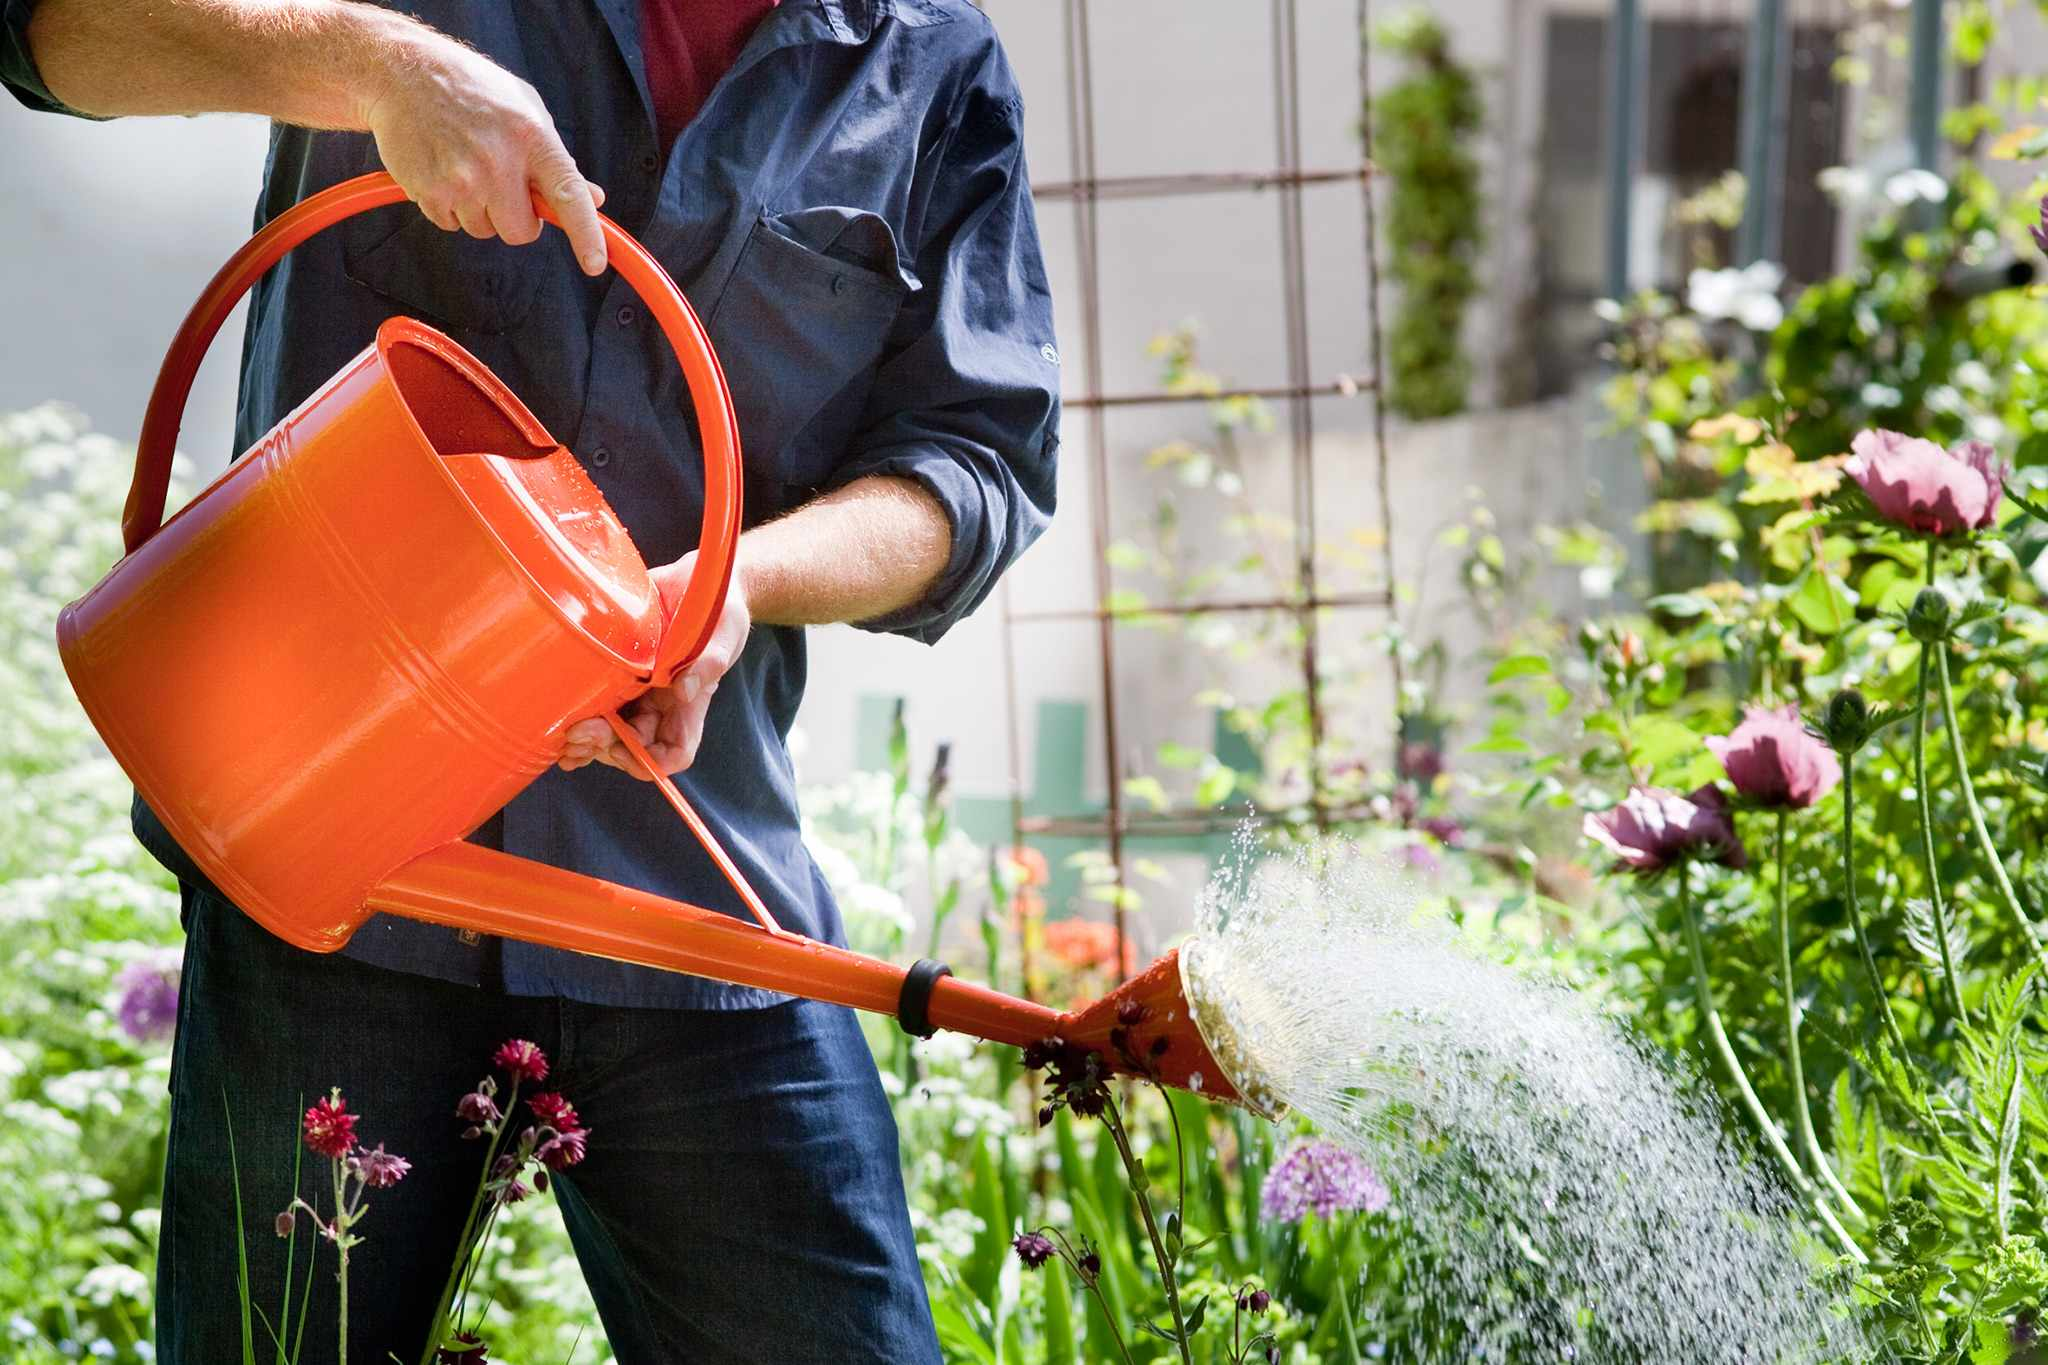 Watering a border in summer